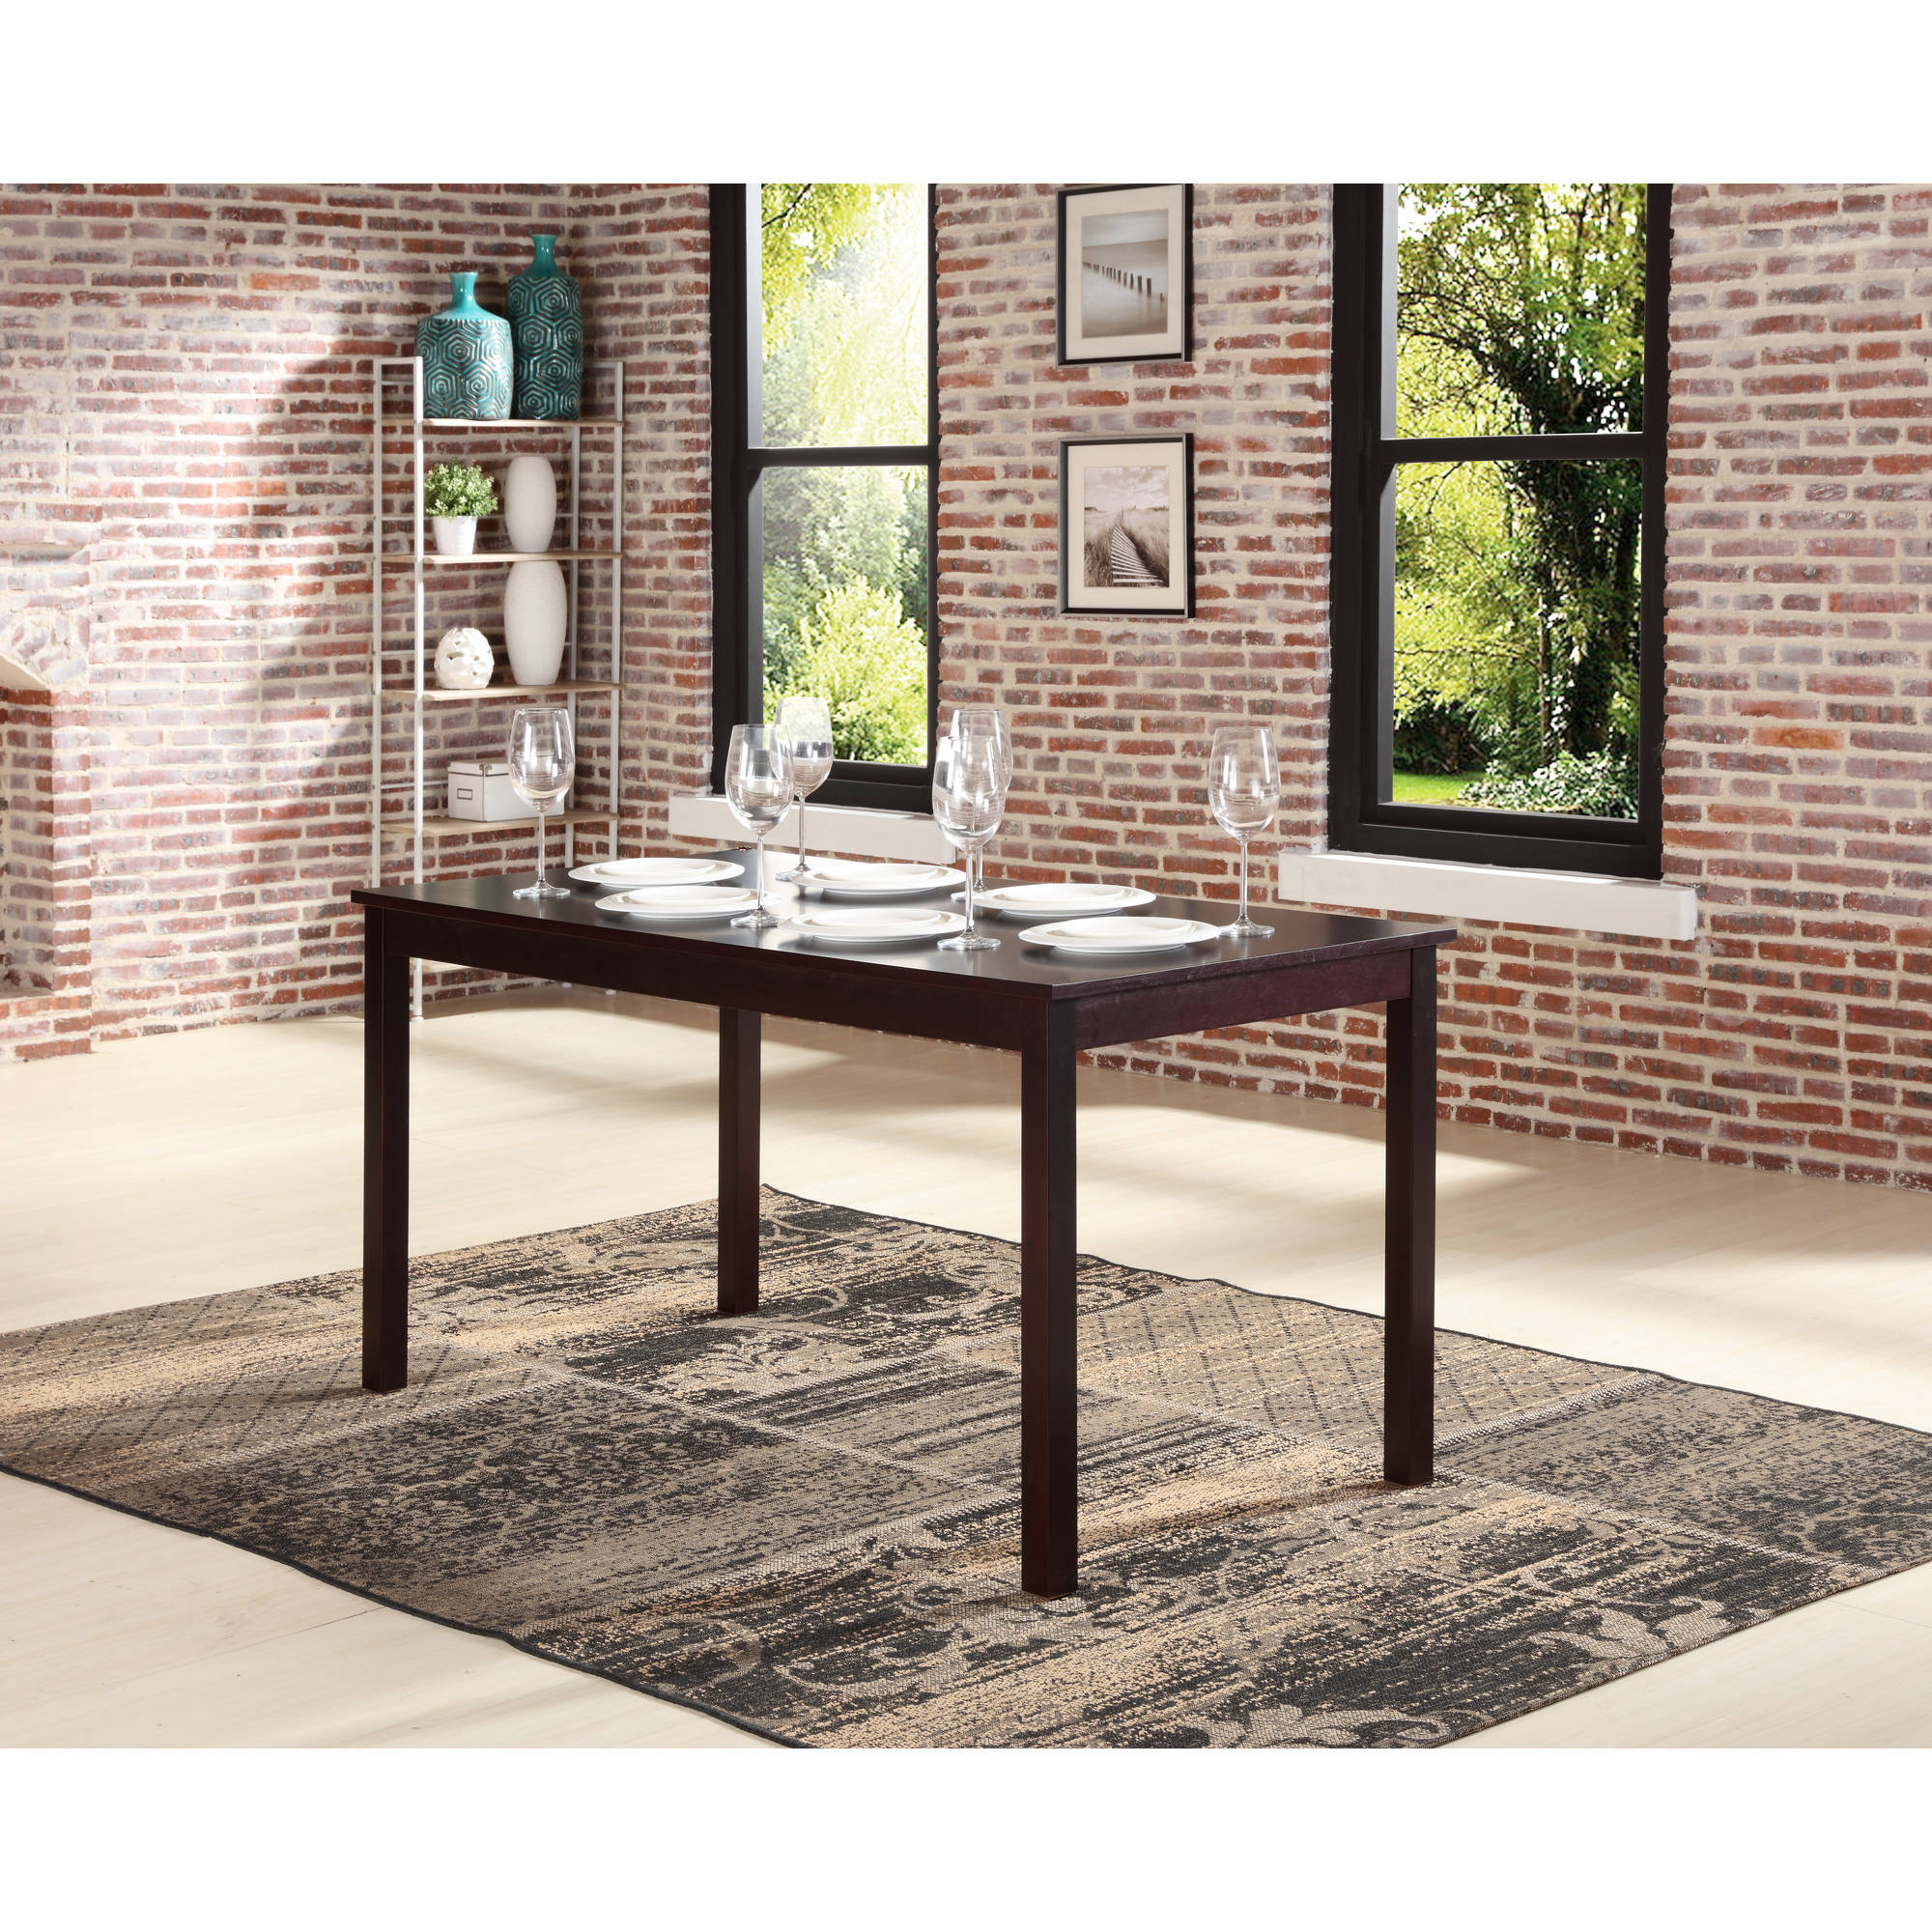 Nice Large Dining Table, Espresso